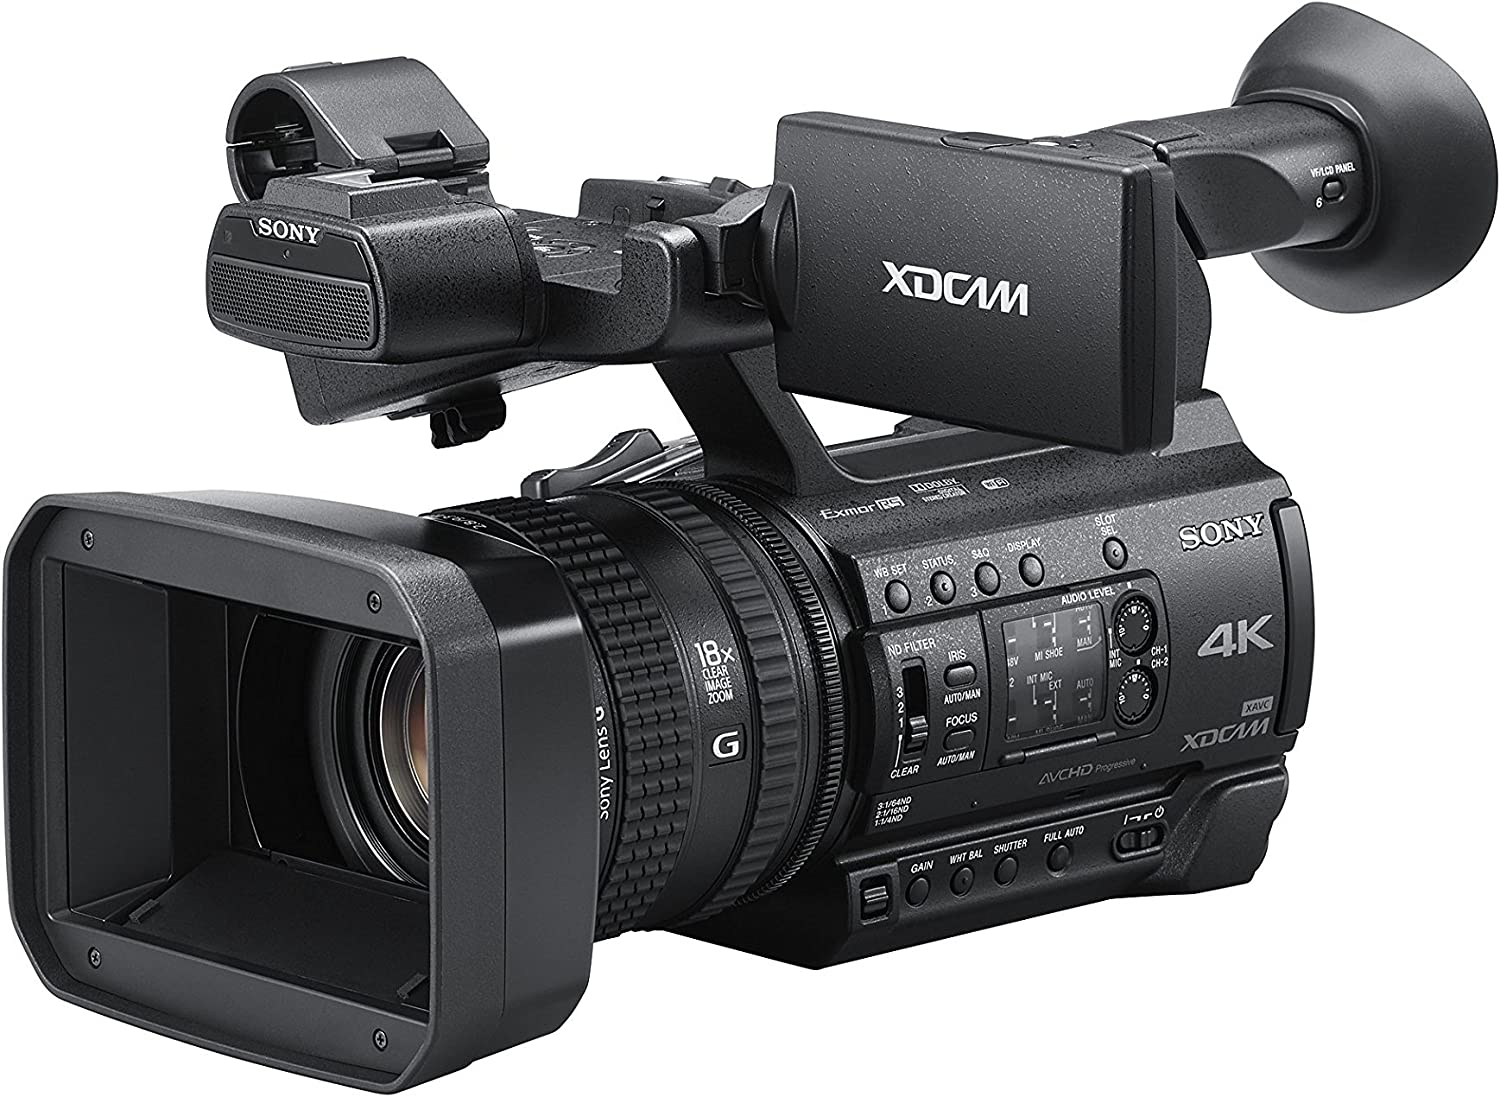 Sony PXW-Z150: good video camera for movie making